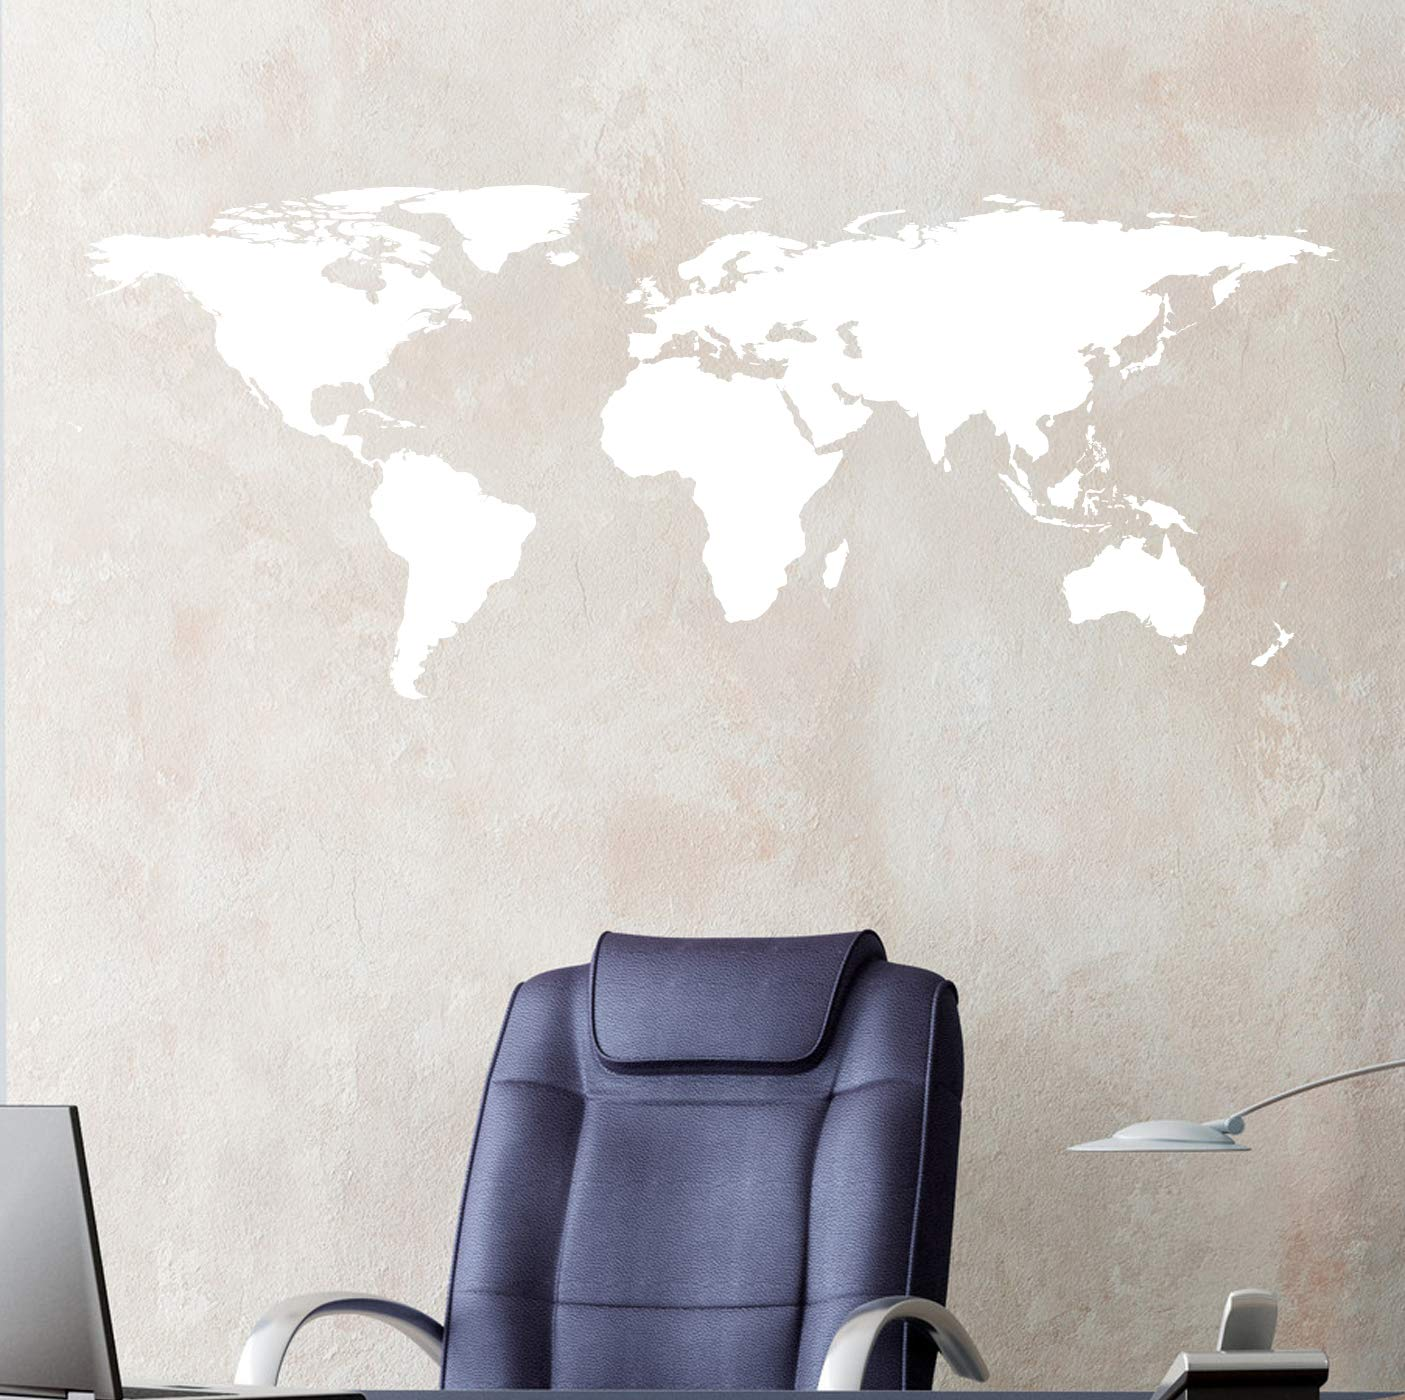 Stickerbrand White World Map Wall Decal Sticker Home Decor Vinyl Wall Art   Large (21in X 51in) Die-Cut Size  Removable